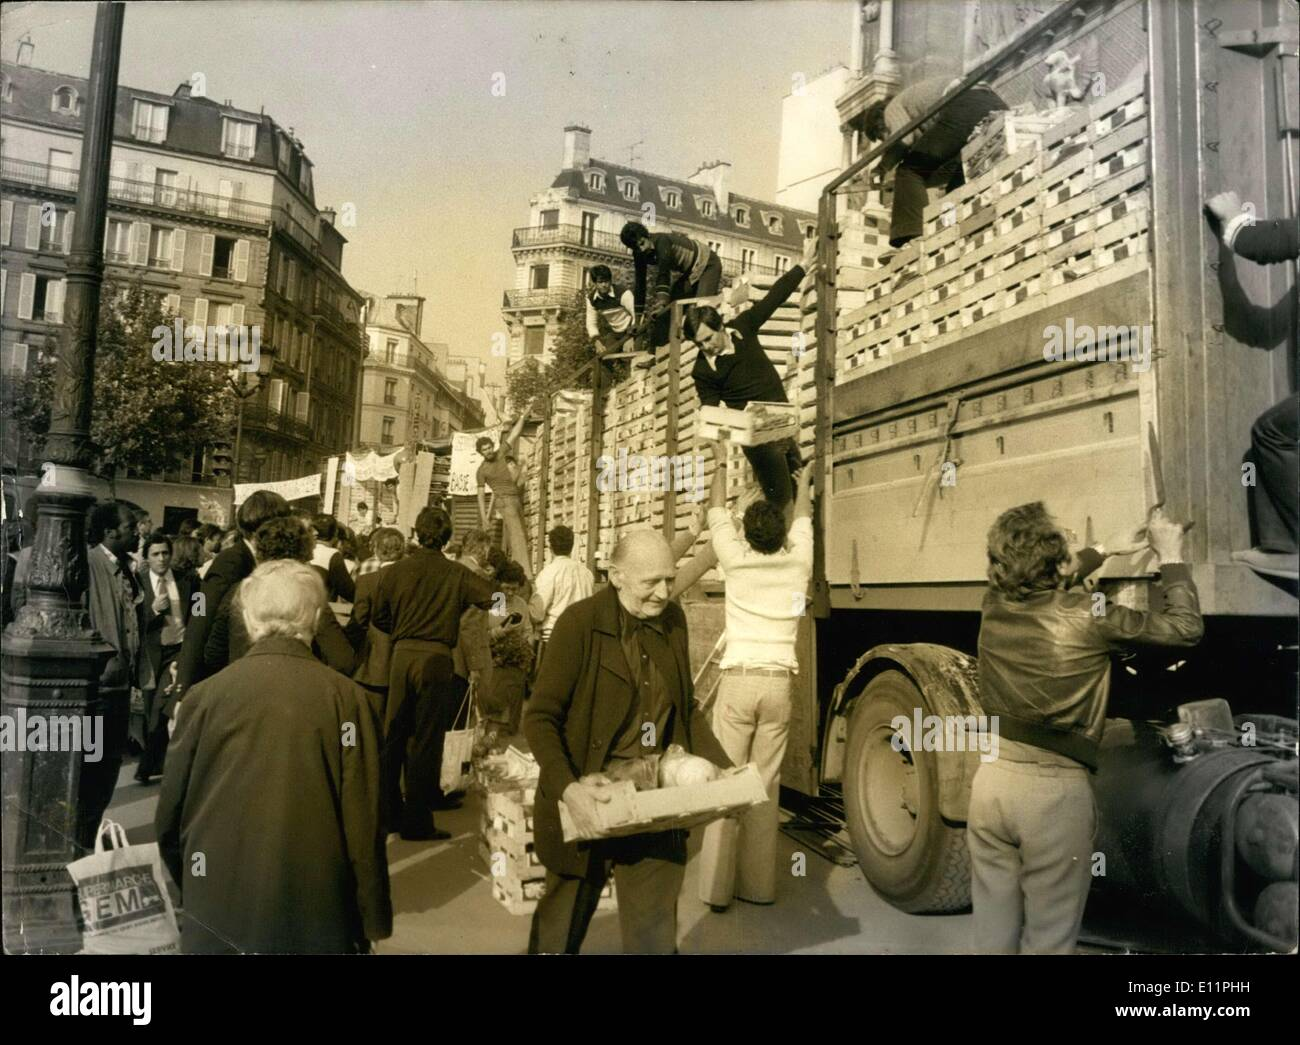 Aug. 28, 1979 - Direct Selling of Fruits and Vegetables in Paris - Stock Image